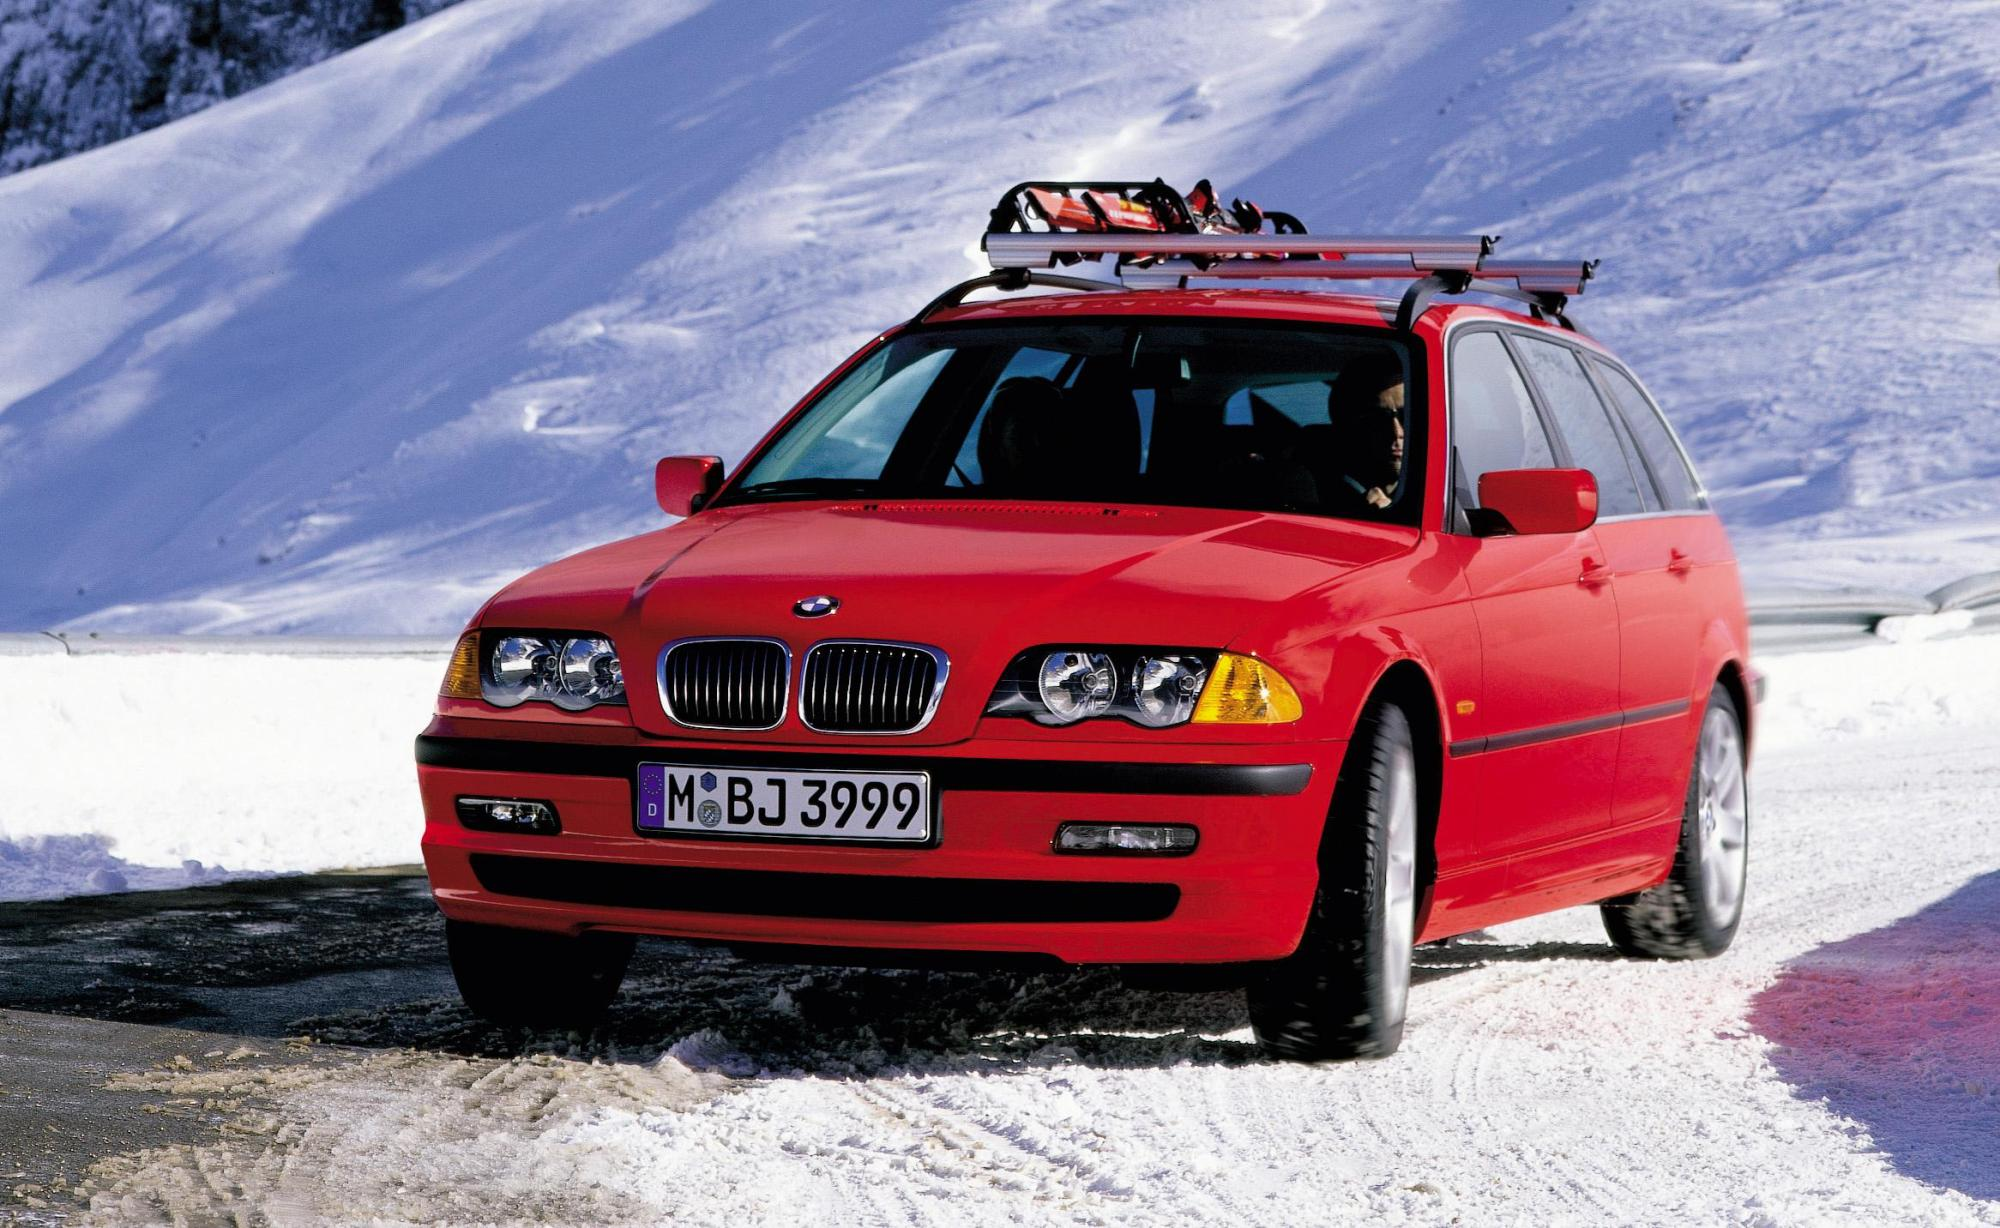 hight resolution of the following year the e46 coupe convertible and wagon called touring in bmw lingo joined the lineup now the team was complete for the most part